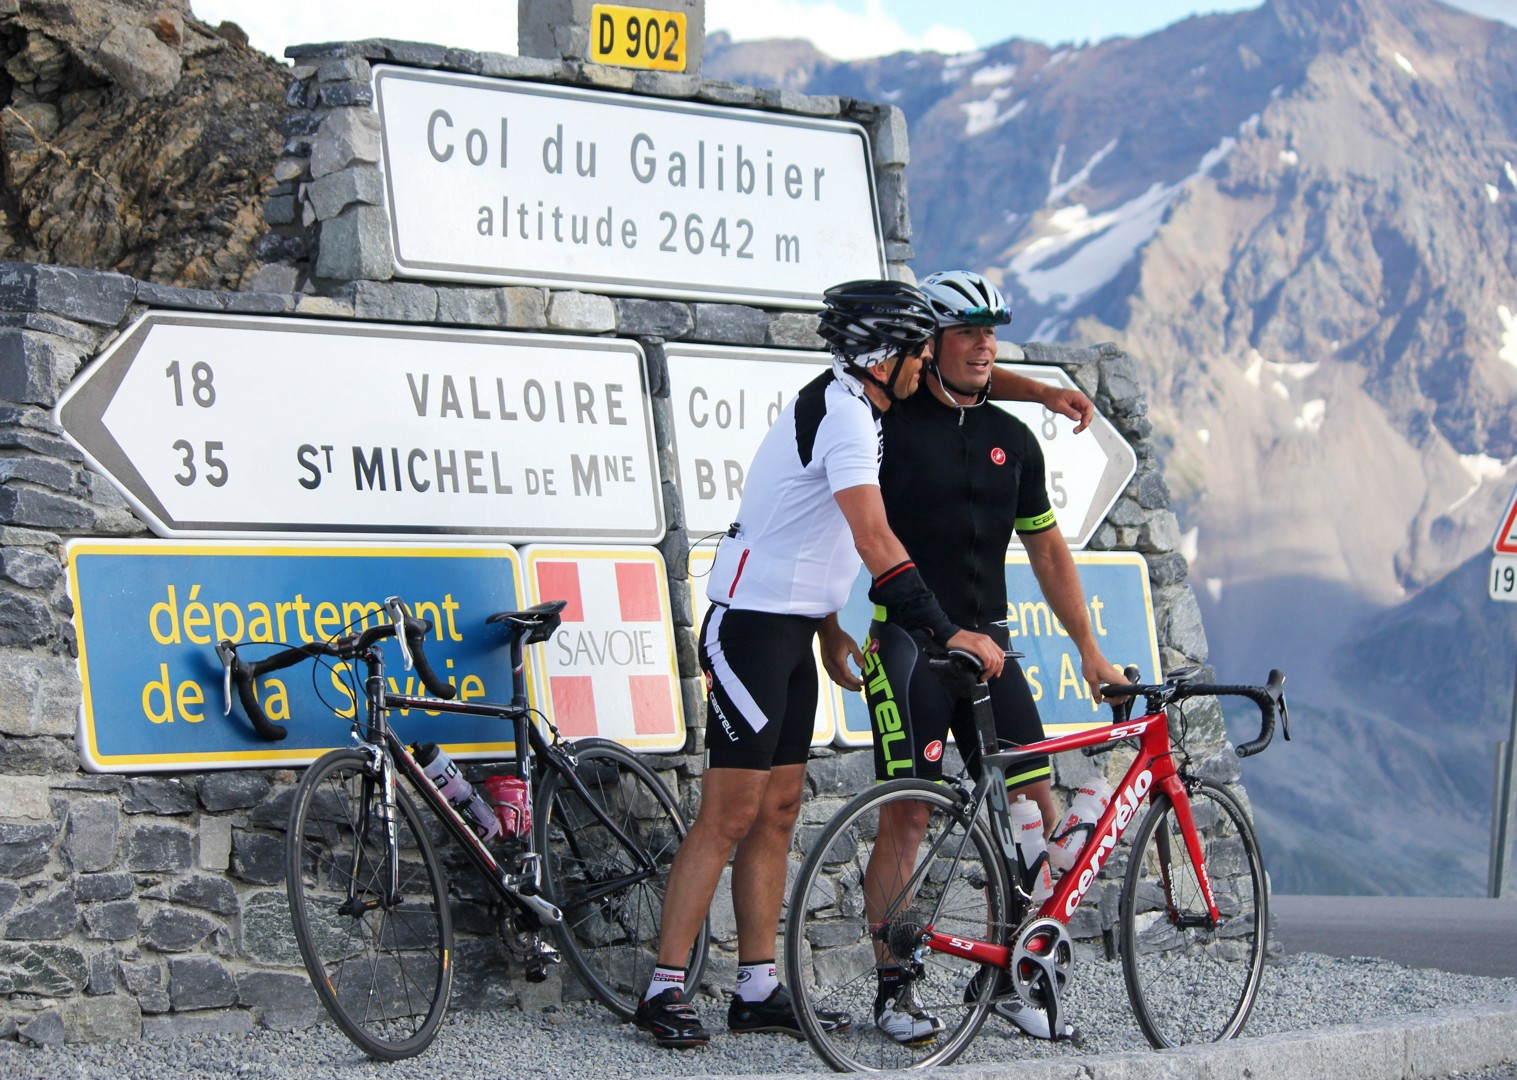 col-du-galibier-french-alps-france-road-cycling-adventure.jpg - France - Alps - Mont Ventoux to Alpe d'Huez - Guided Road Cycling Holiday - Road Cycling